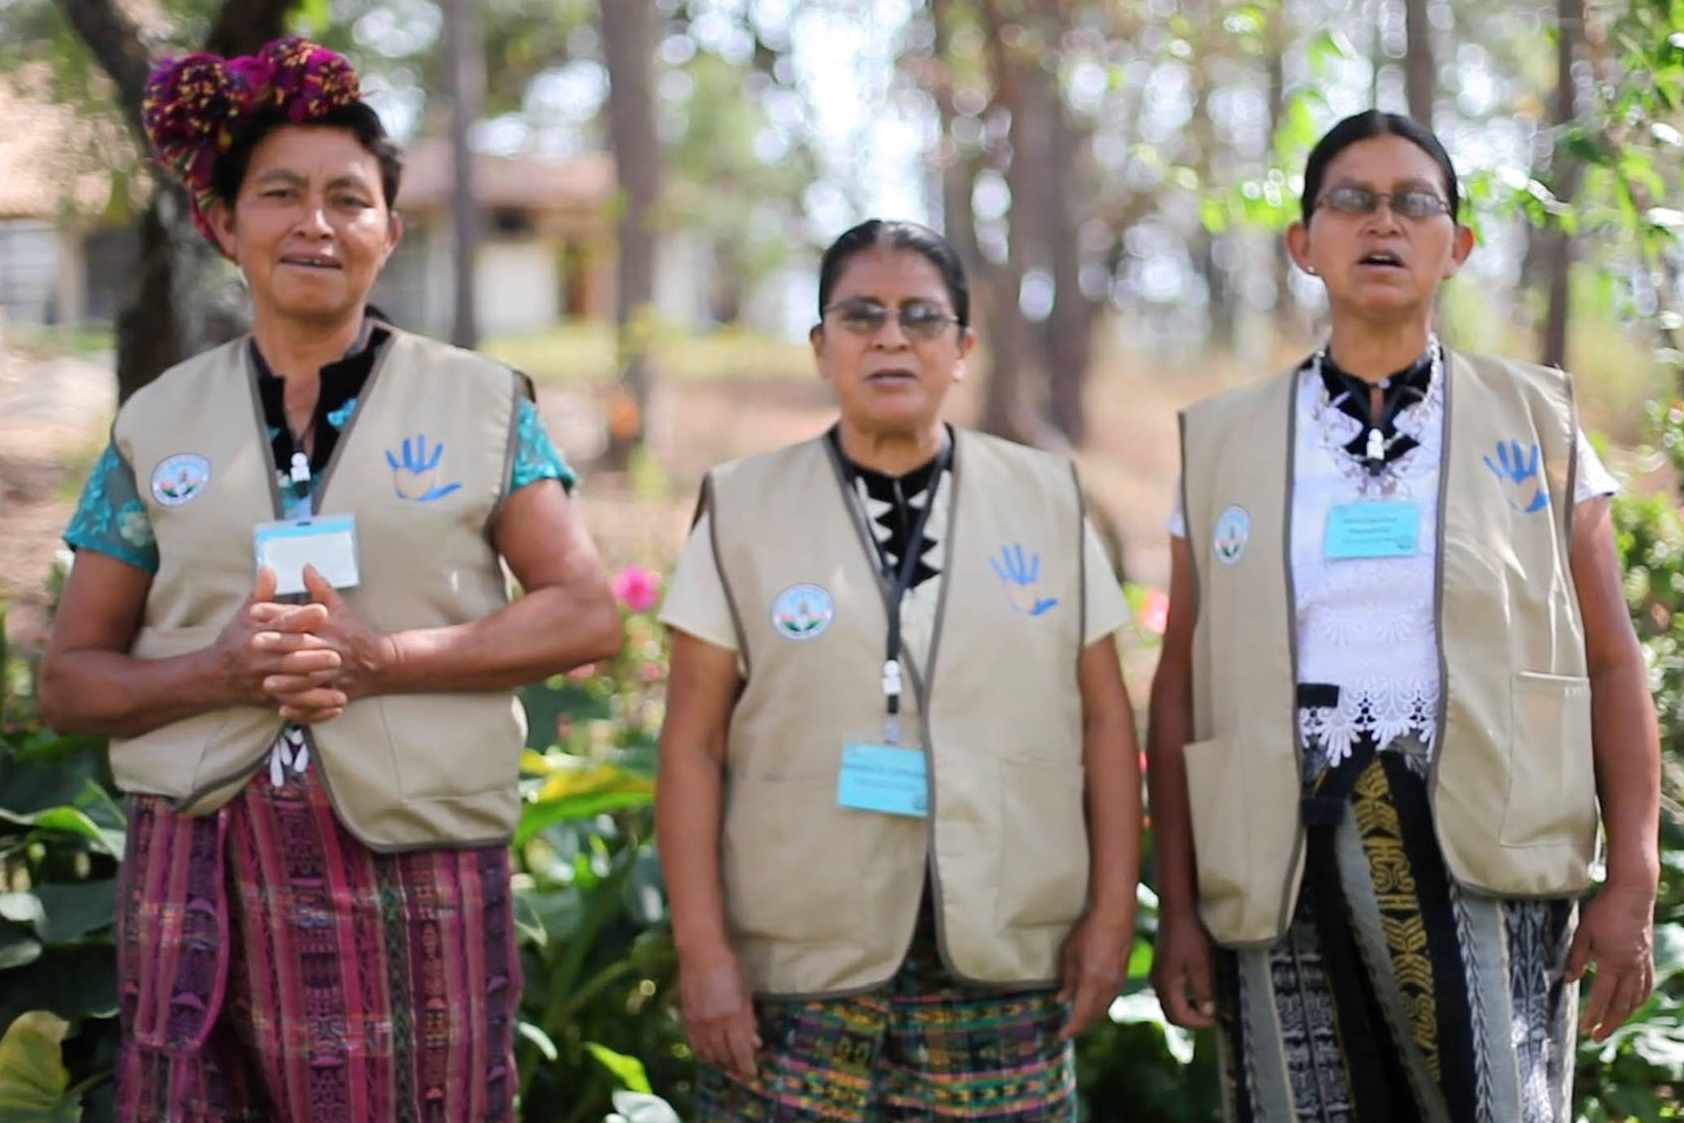 Las Tres Pajaritas:  Magdalena, Maruca, and Rosa Play an Integral Part in GHF Health Promotion